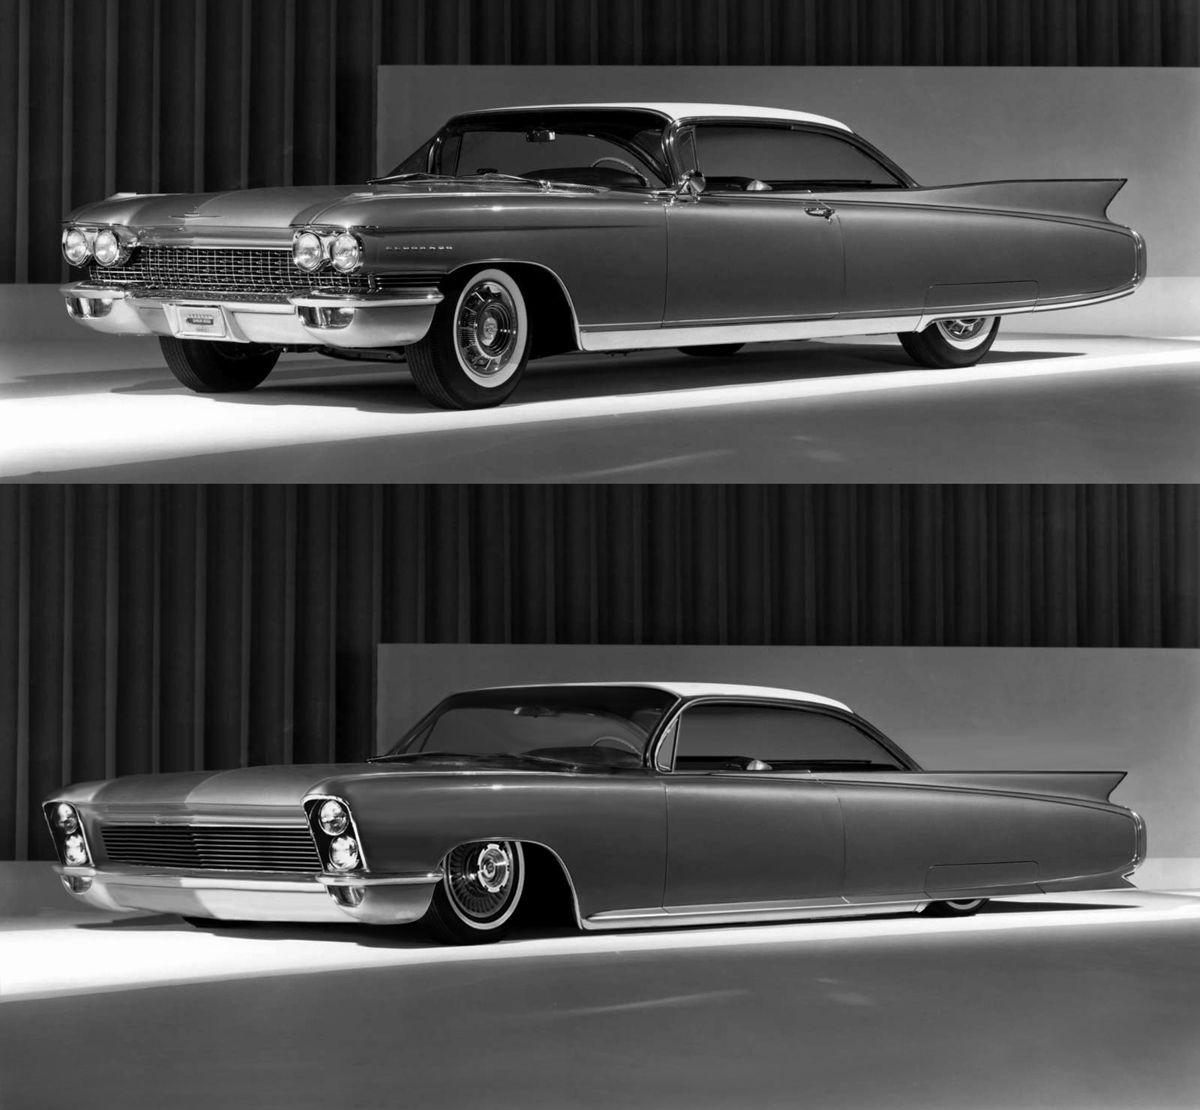 How to build a time machine photo 1960 cadillac